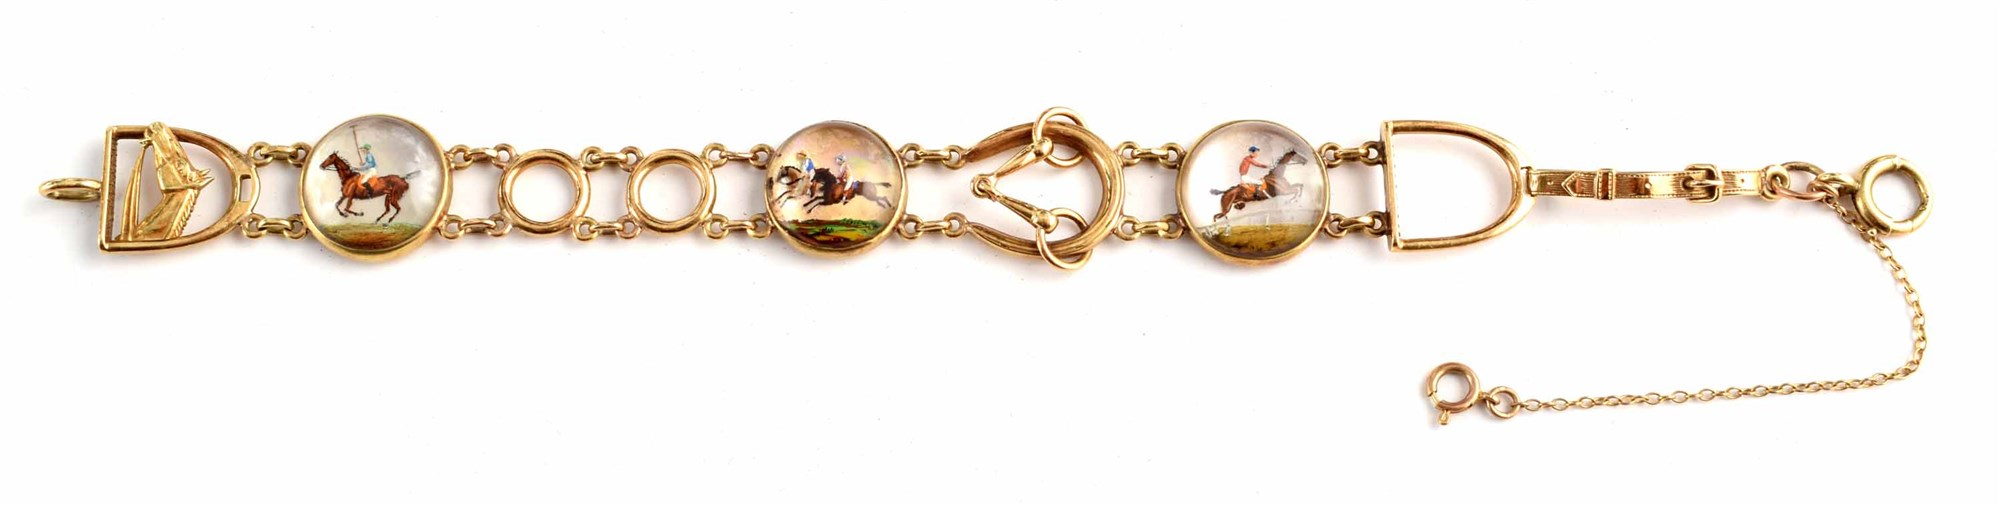 An early 20th century Essex Crystal bracelet, of horse racing interest, comprising a trio of round rock crystal reverse carved intaglio horse racing scenes, within a fancy link chain with stirrup and horse head links, the central intaglio link stamped '14k, PAT.SEPT.1924' length 18cm, with Martin & Co, Cheltenhnam box.